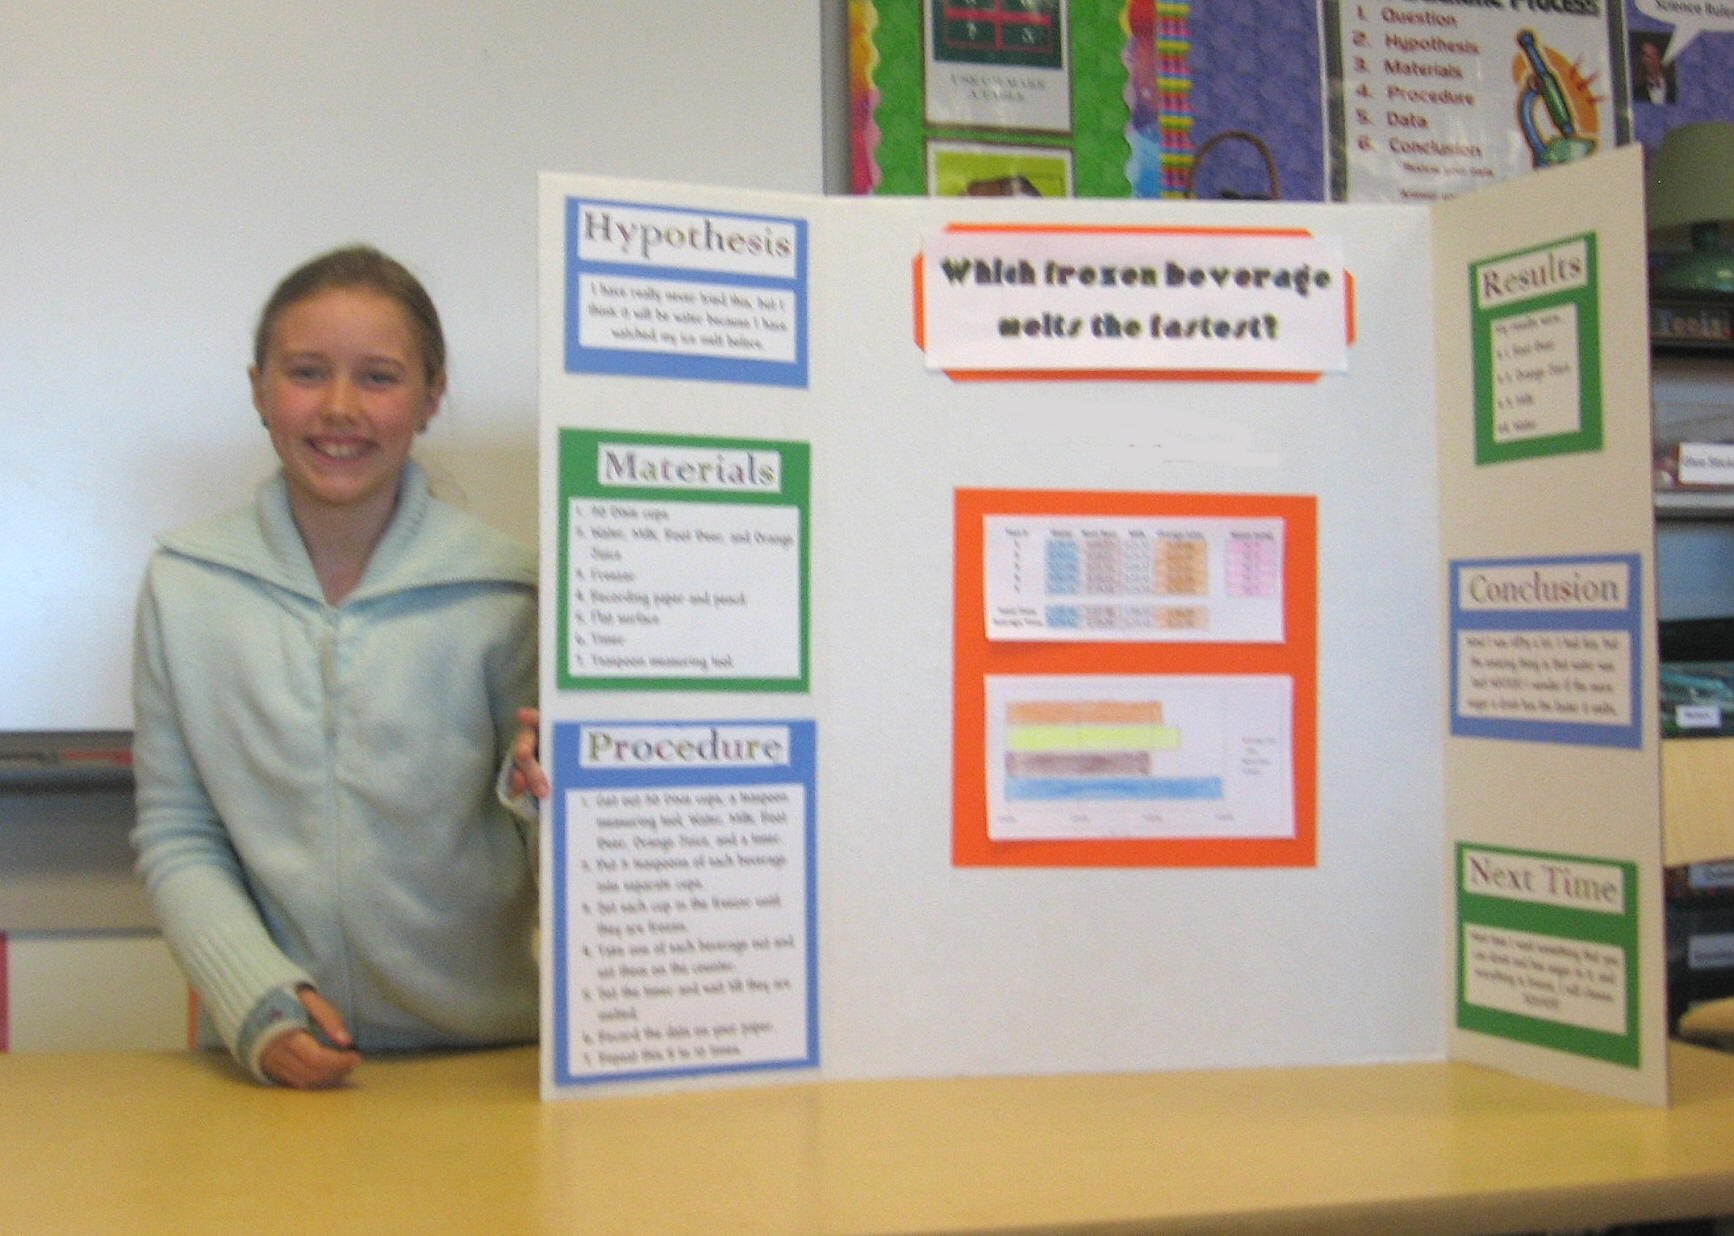 10 Most Popular Ideas For Science Fair Projects For 4Th Graders great science fair project ideaswhich popsicle melts the fastest 3 2020